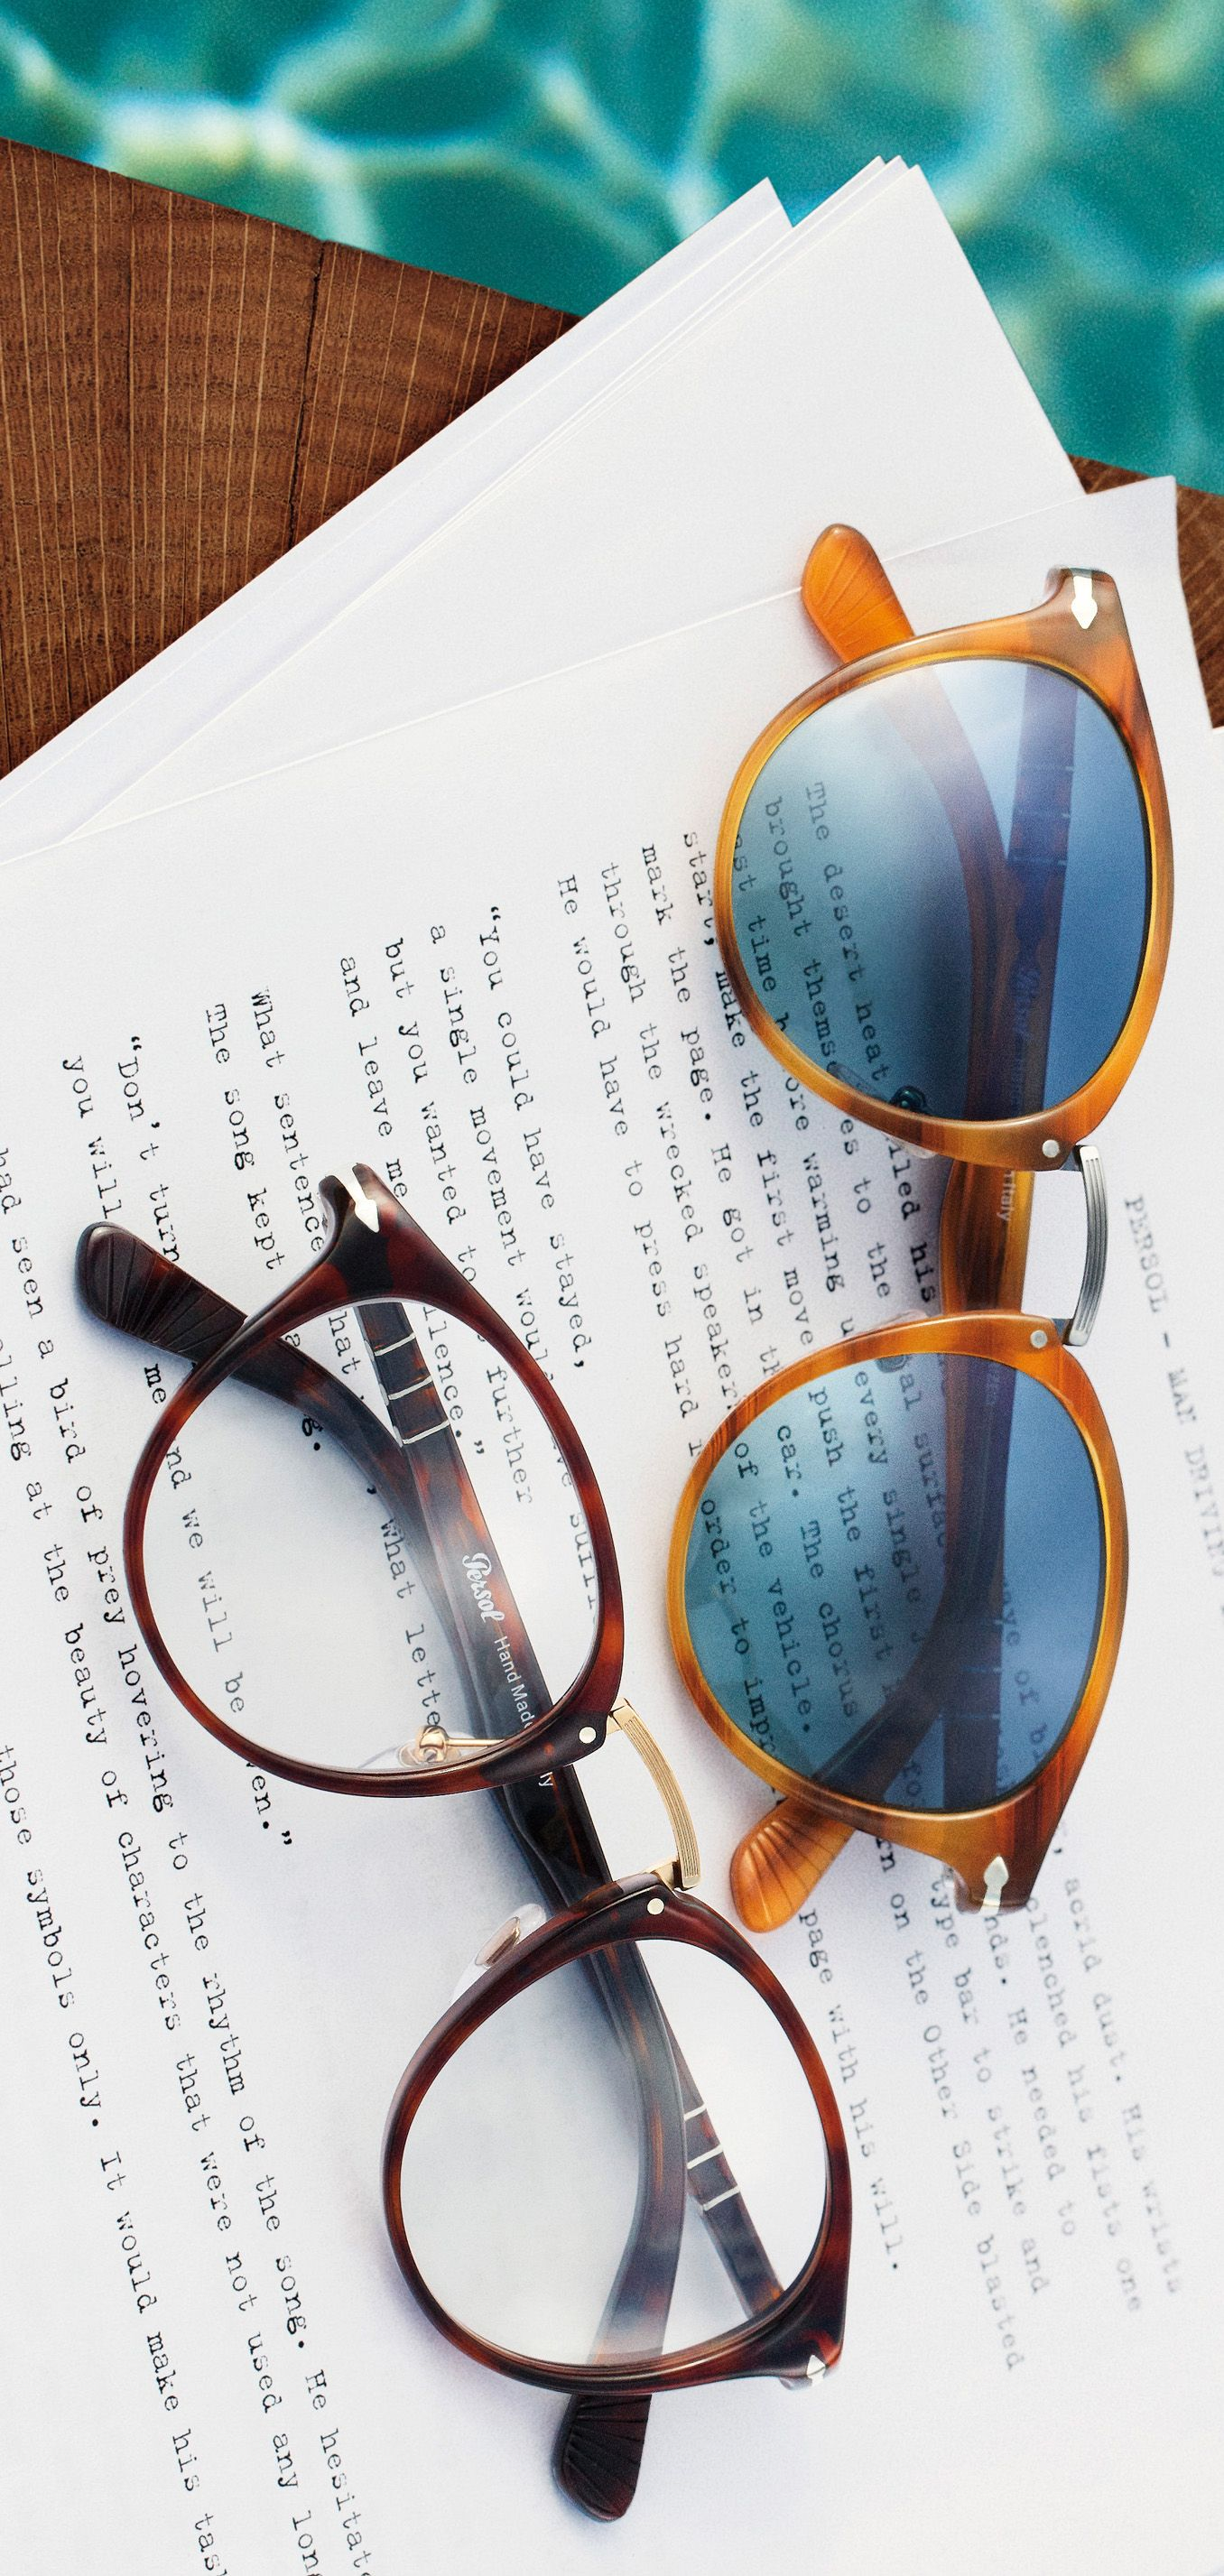 bc720decc4 Typewriter Edition 3107v glasses and 3108s sunglasses  https   www.eyewearthese.com